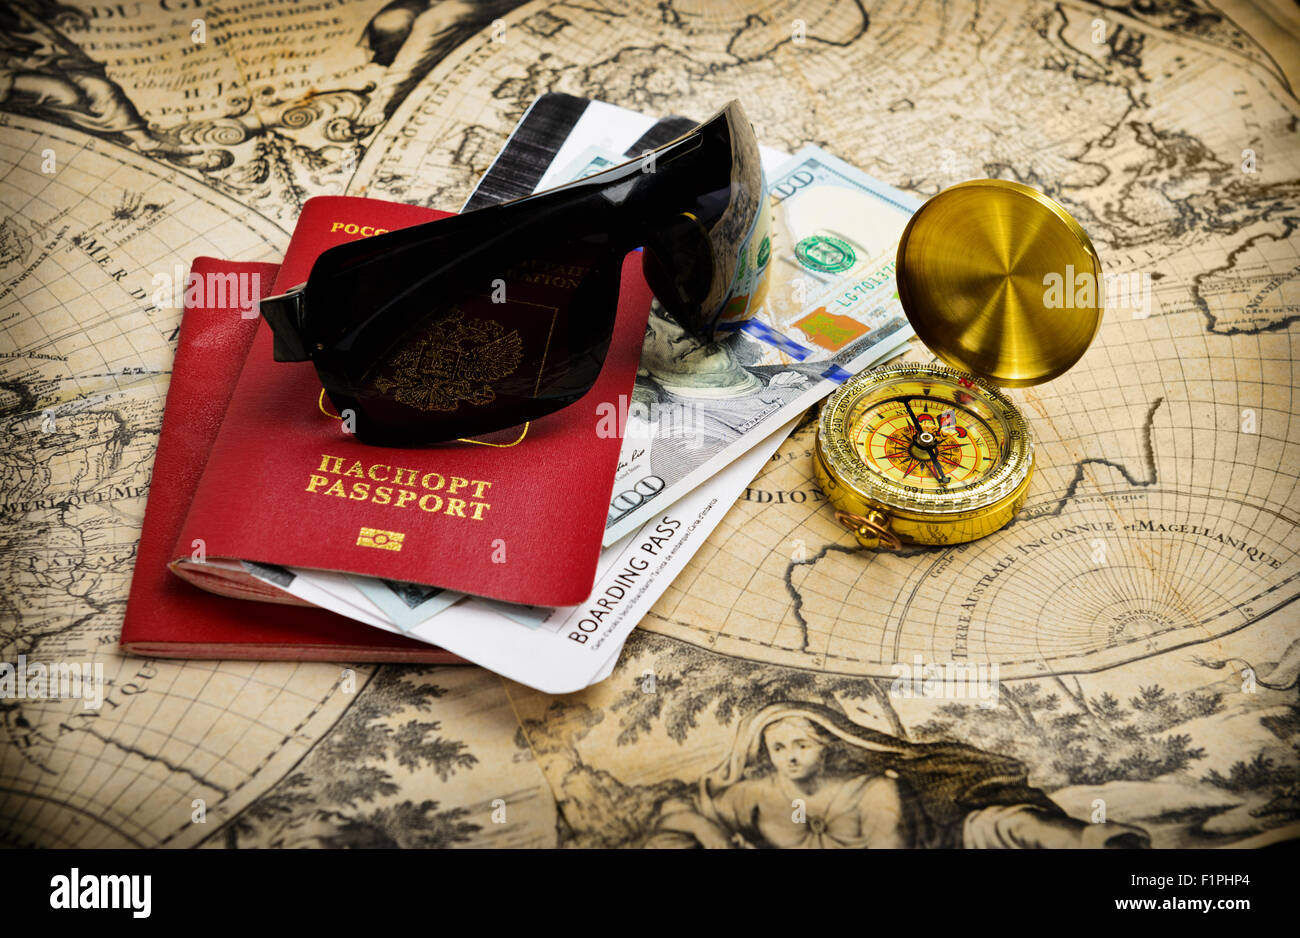 World travel concept. Passport and journey items on vintage world map - Stock Image